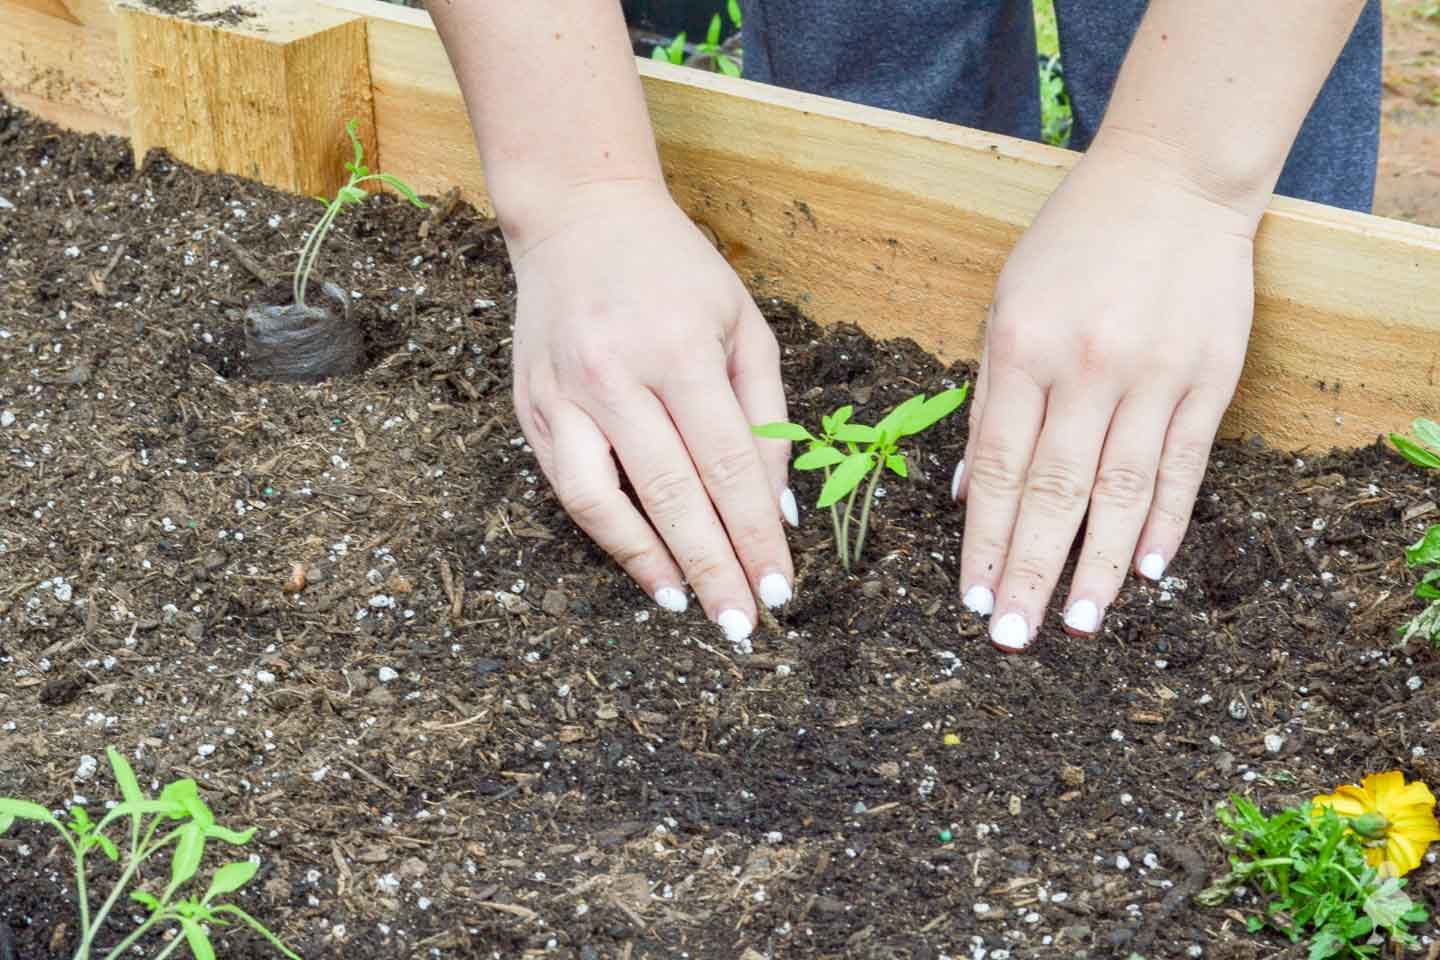 closeup of hands digging into garden soil